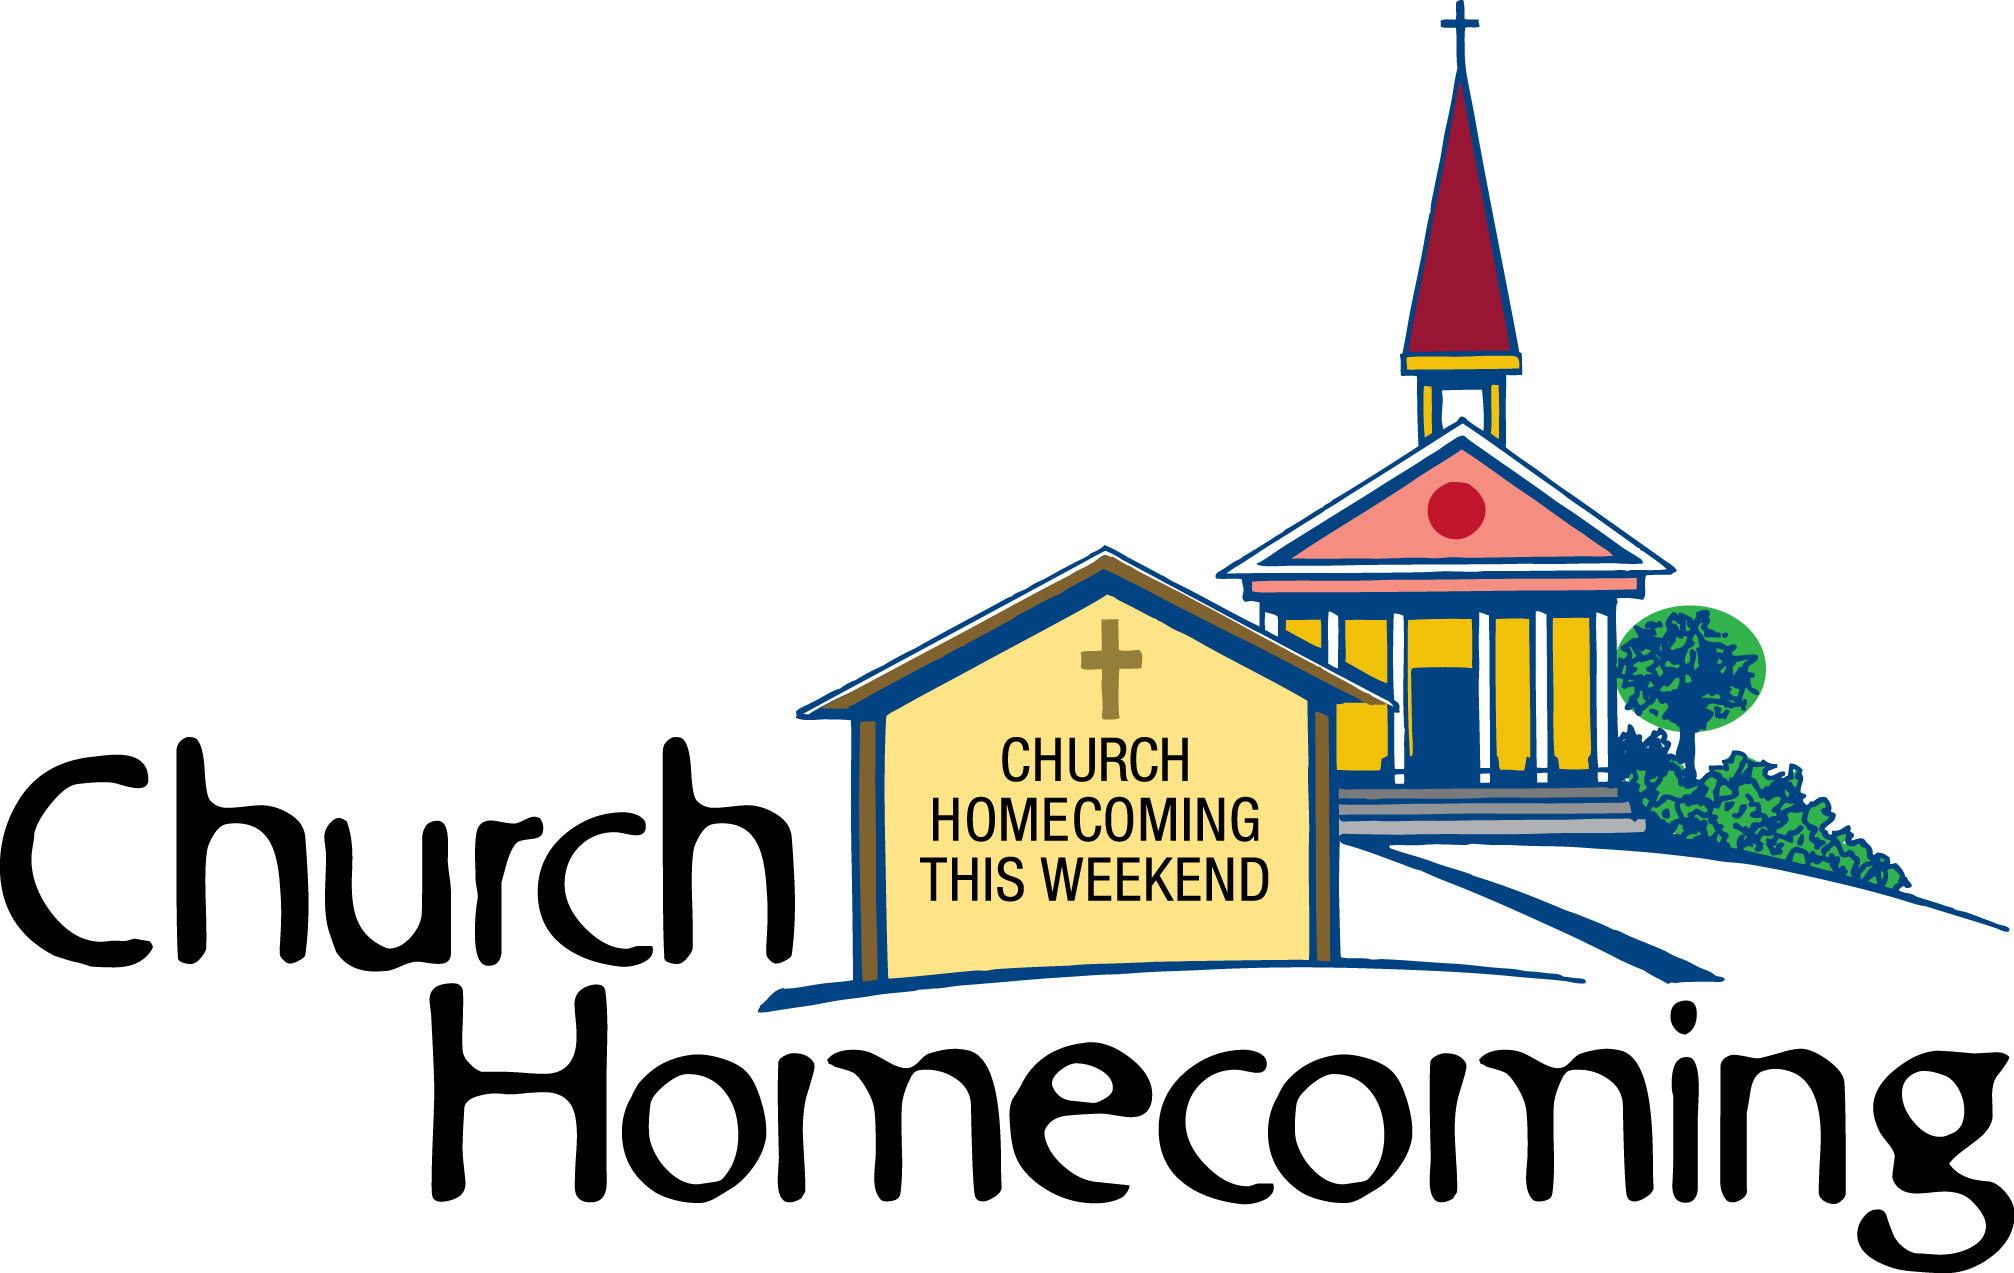 Homecoming King And Queen Clipart | Clipart Panda - Free Clipart .